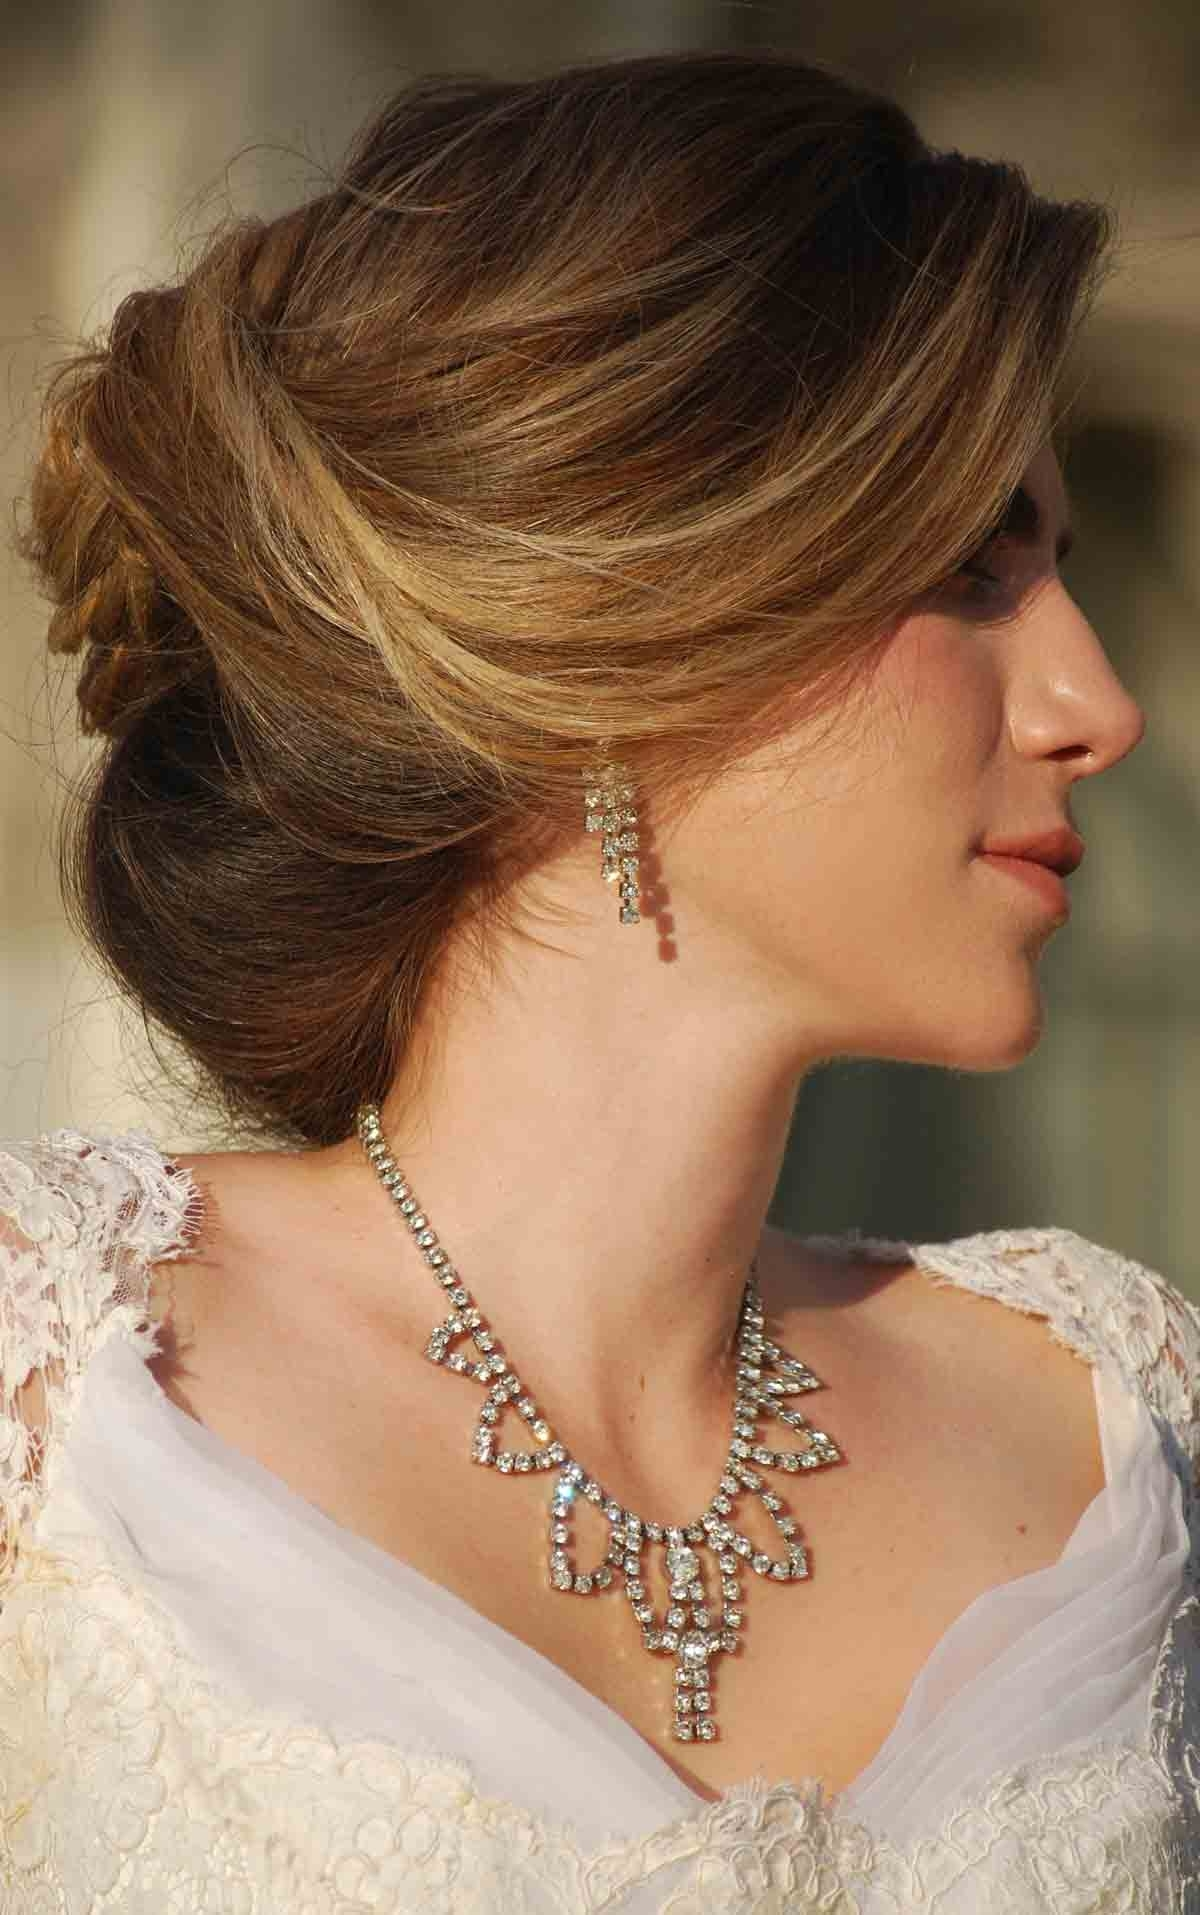 Justswimfl For Well Liked Wedding Hairstyles For Round Face With Medium Length Hair (View 6 of 15)